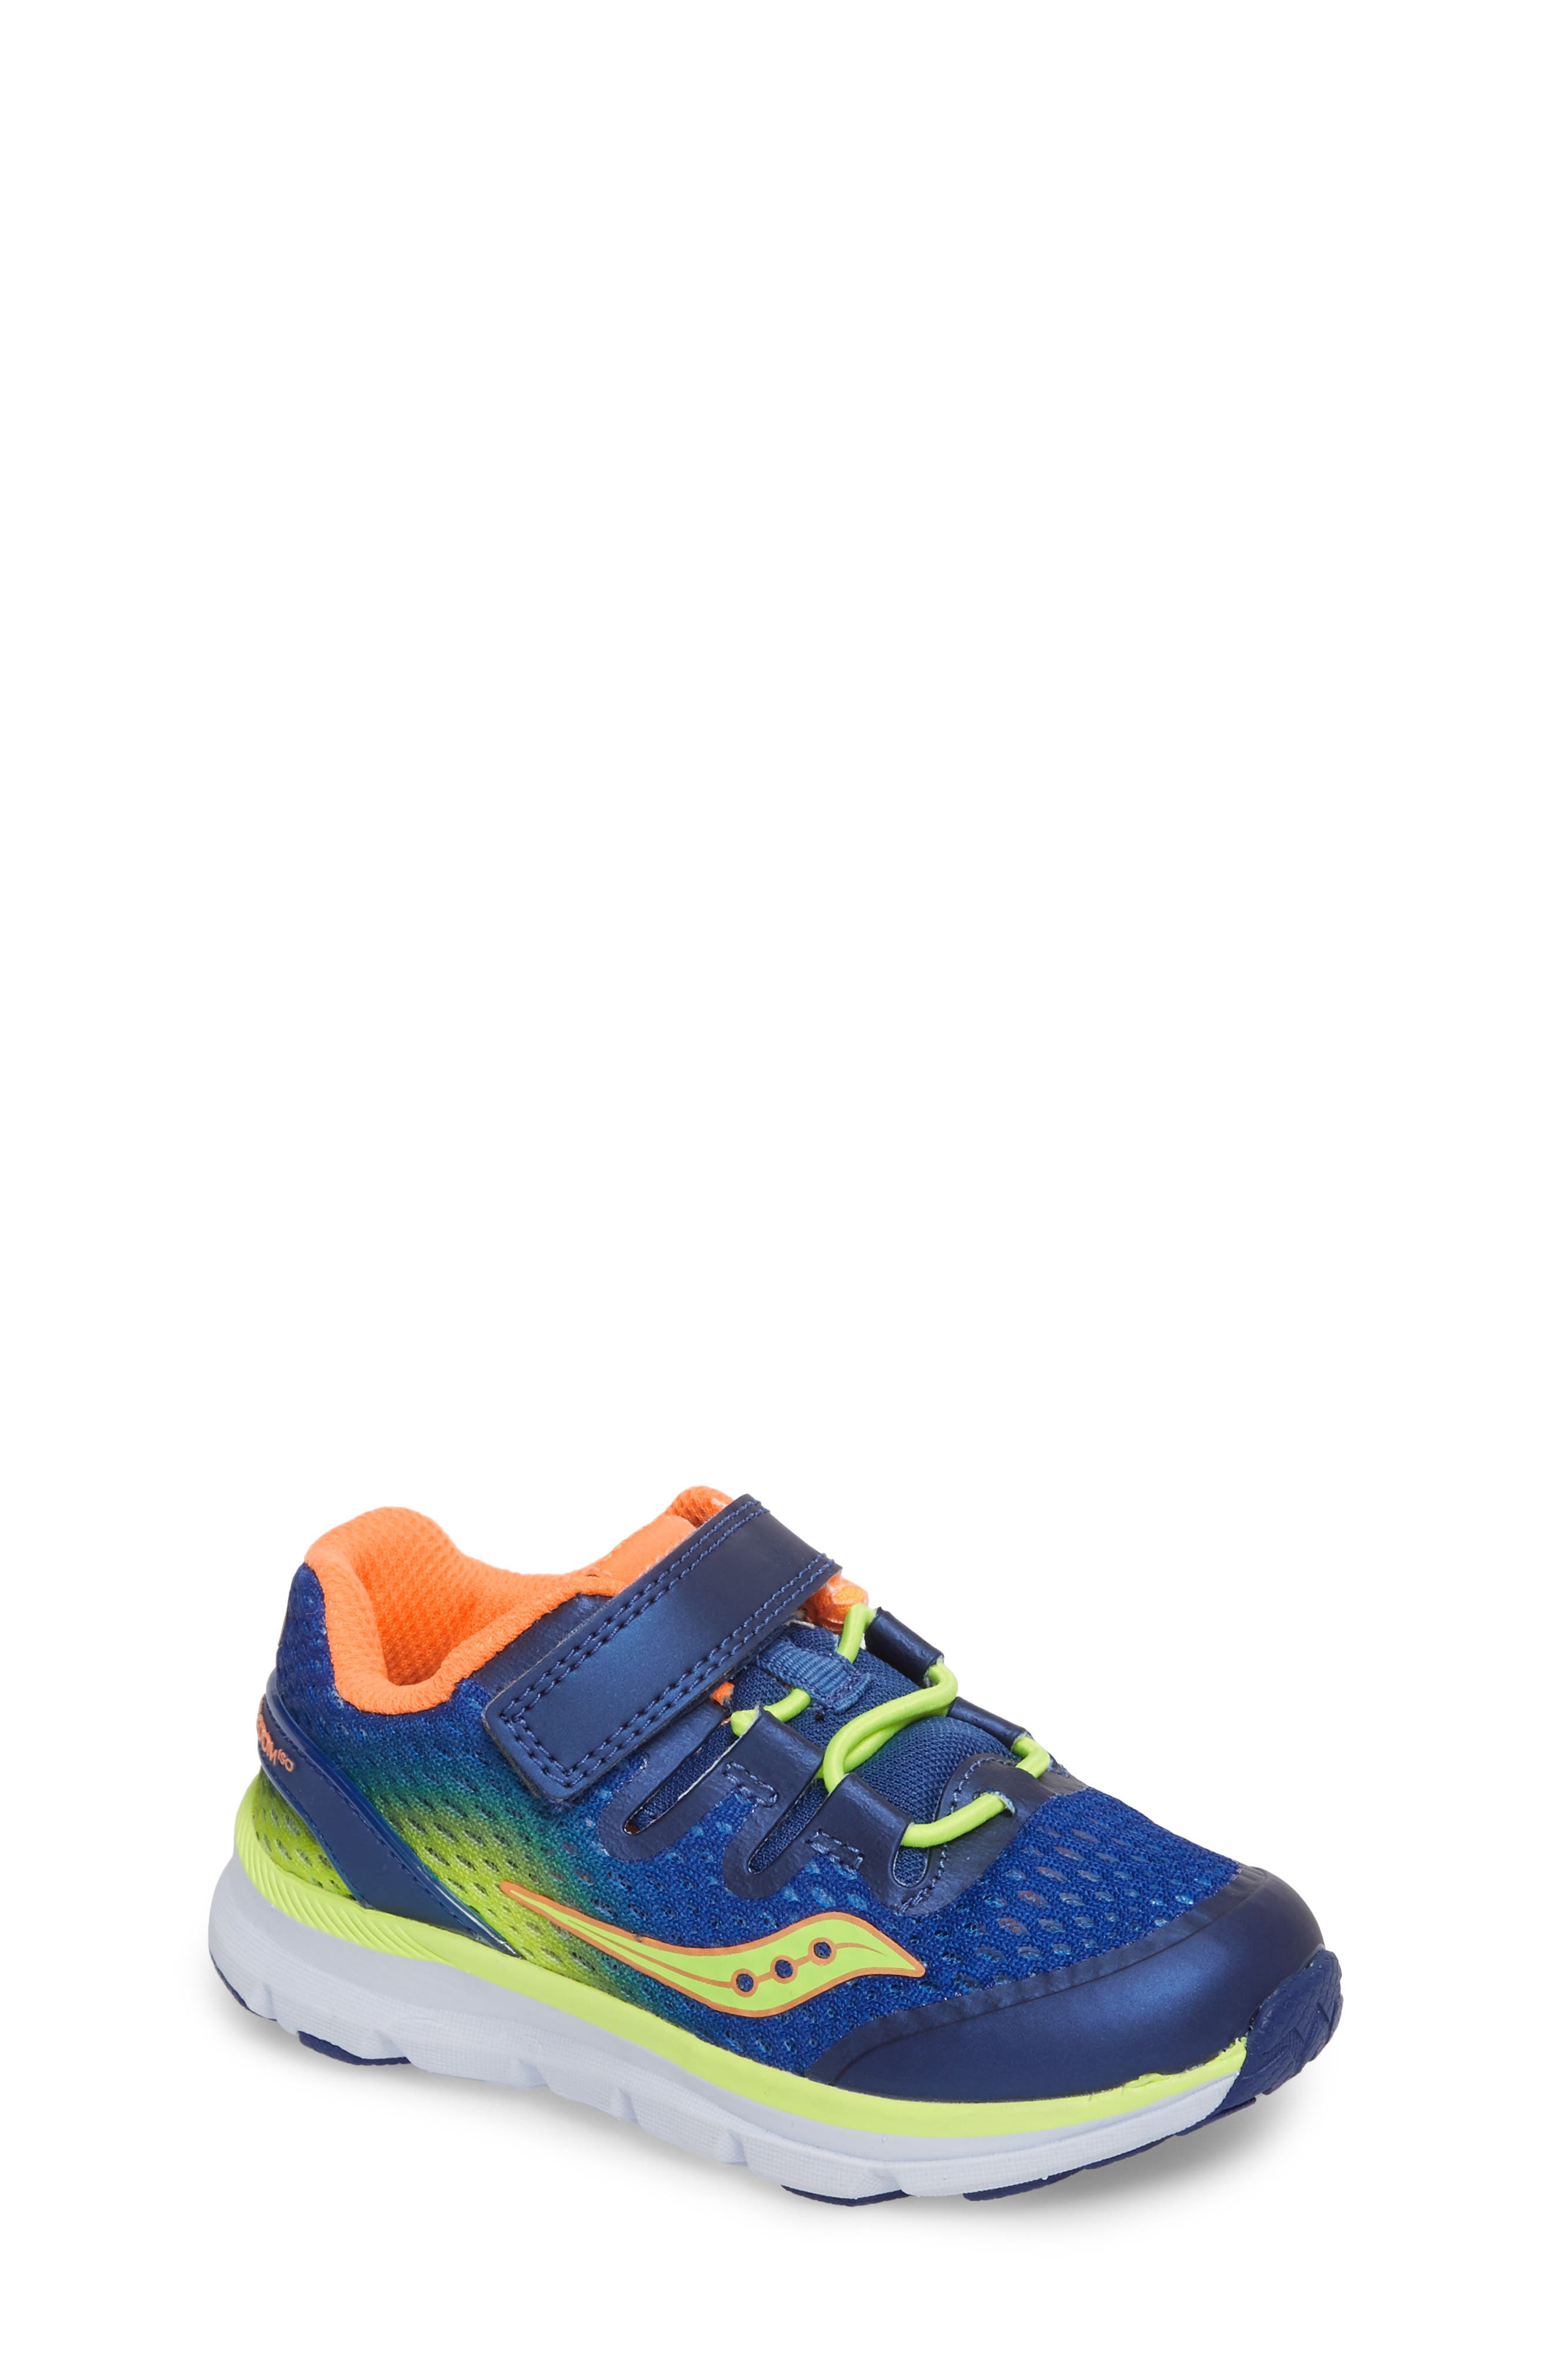 Baby Freedom ISO Sneaker,                             Main thumbnail 1, color,                             400